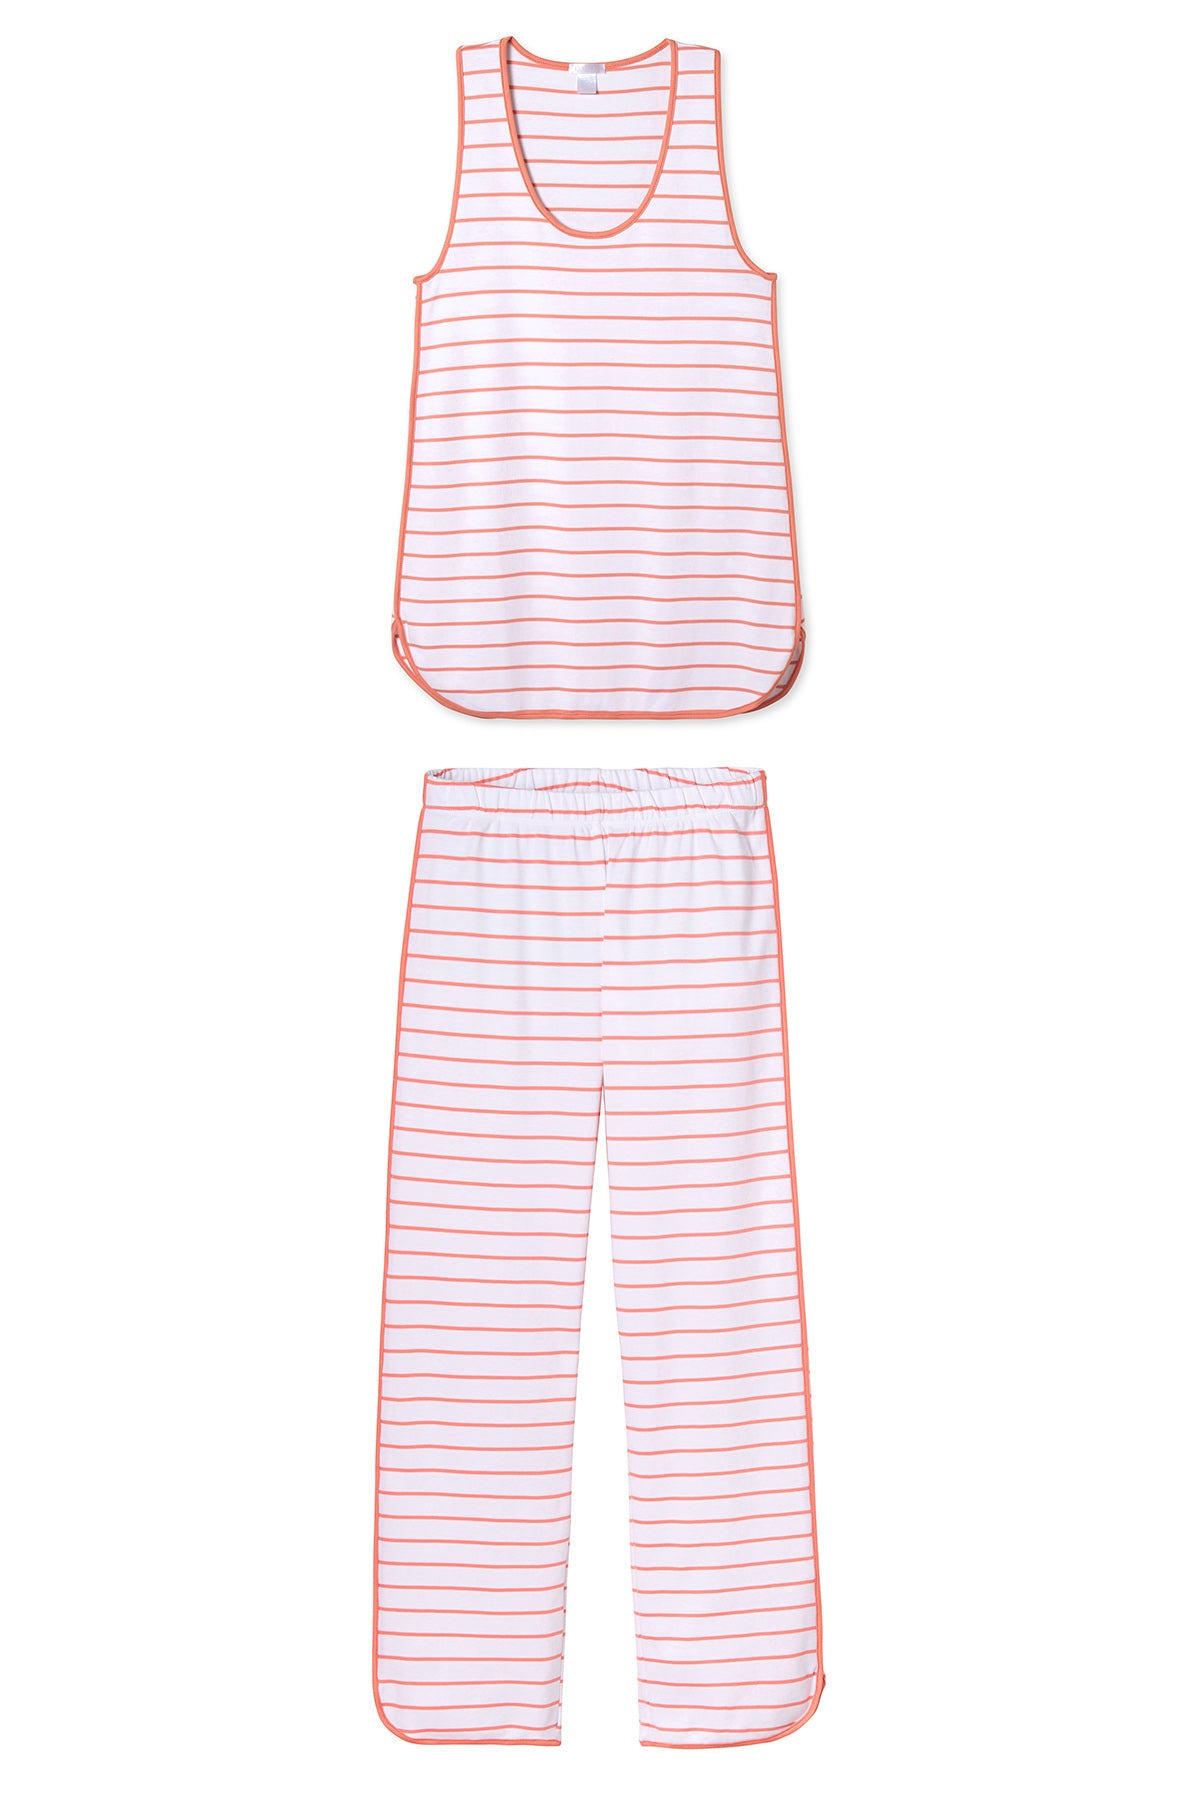 Pima Tank-Long Set in Coral